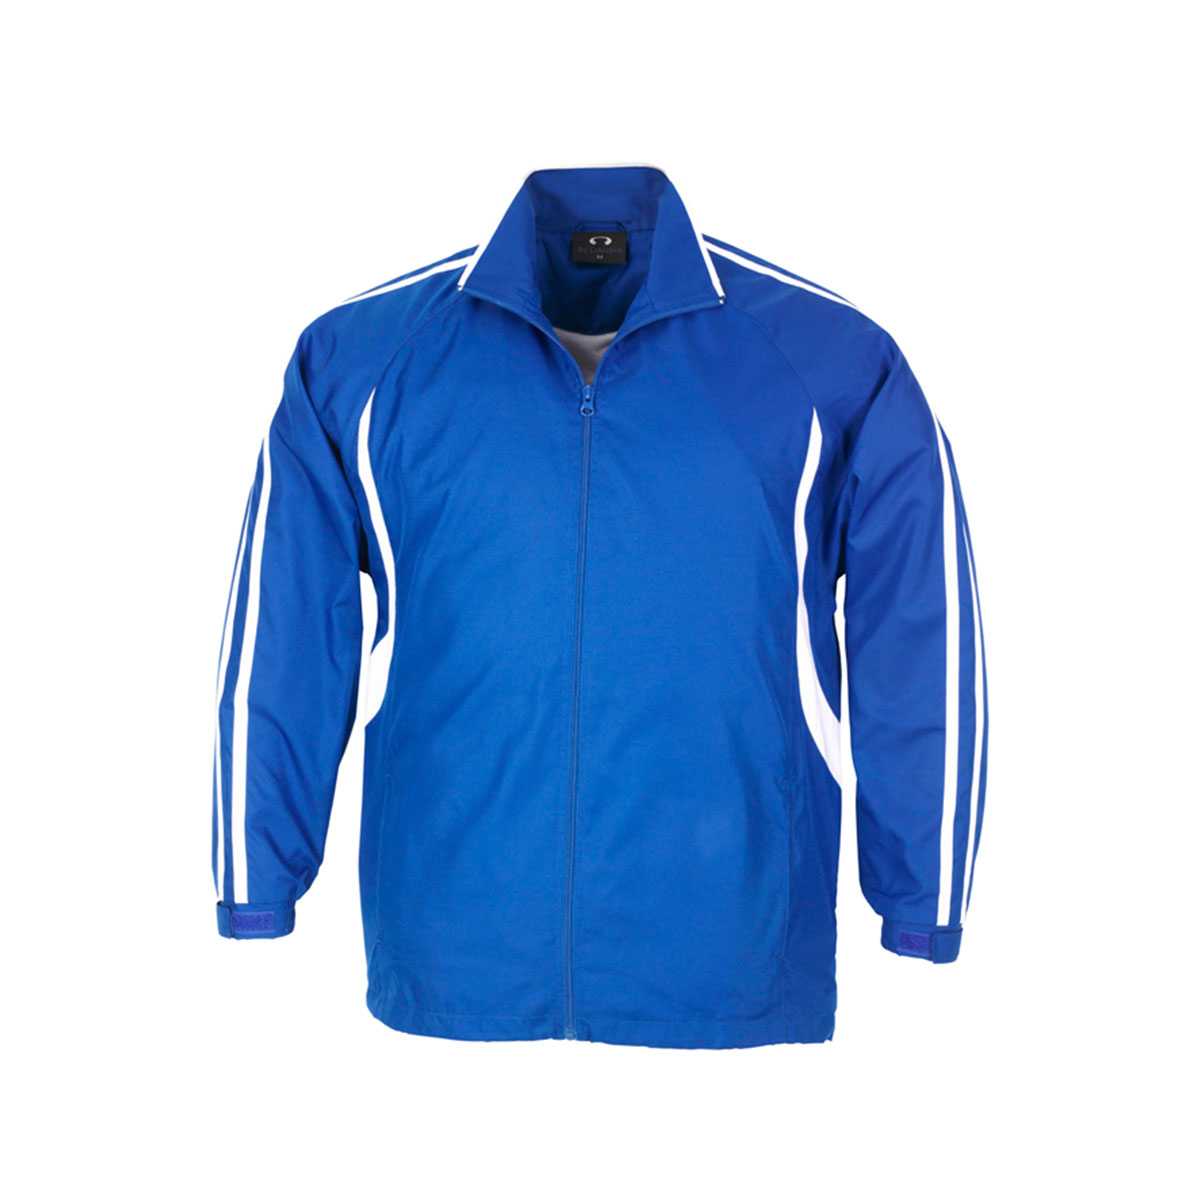 Adults Flash Track Top-Royal / White